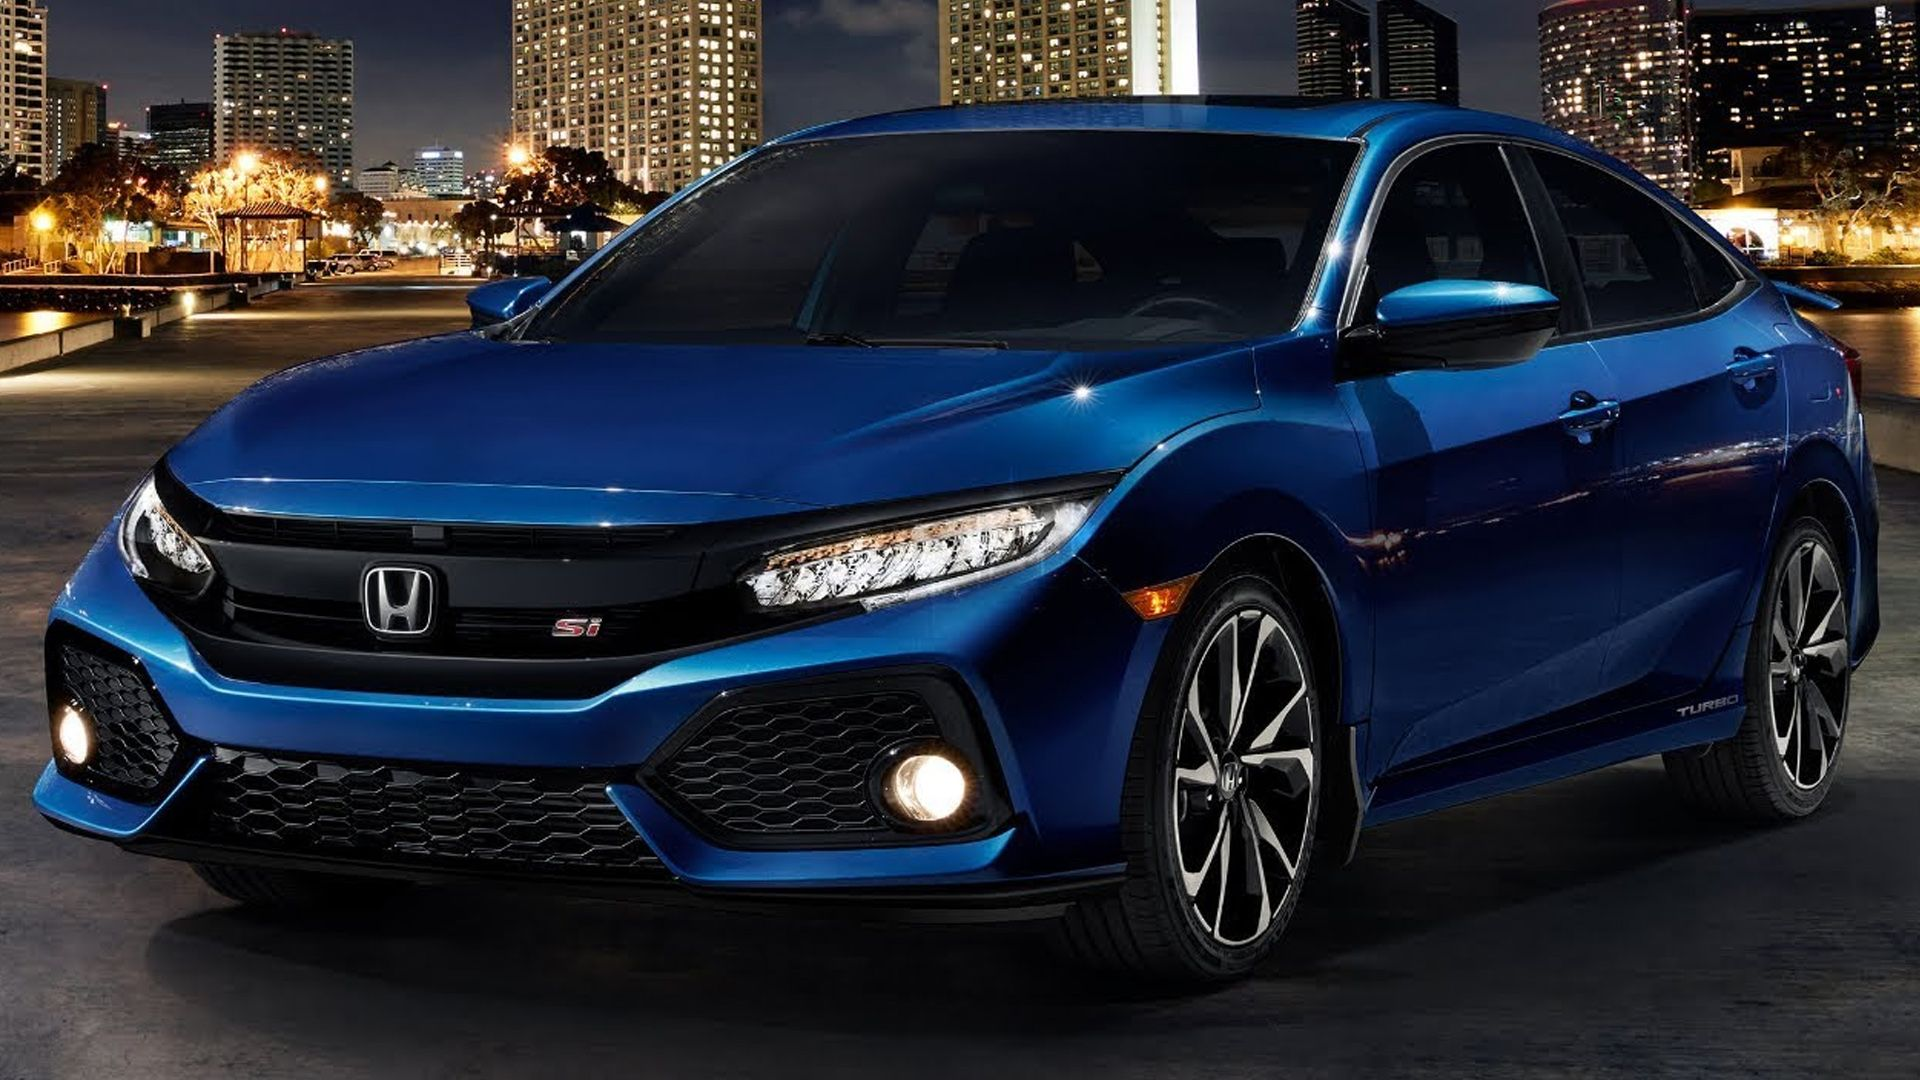 The 2019 Honda Civic Sedan and Coupe receive a number of